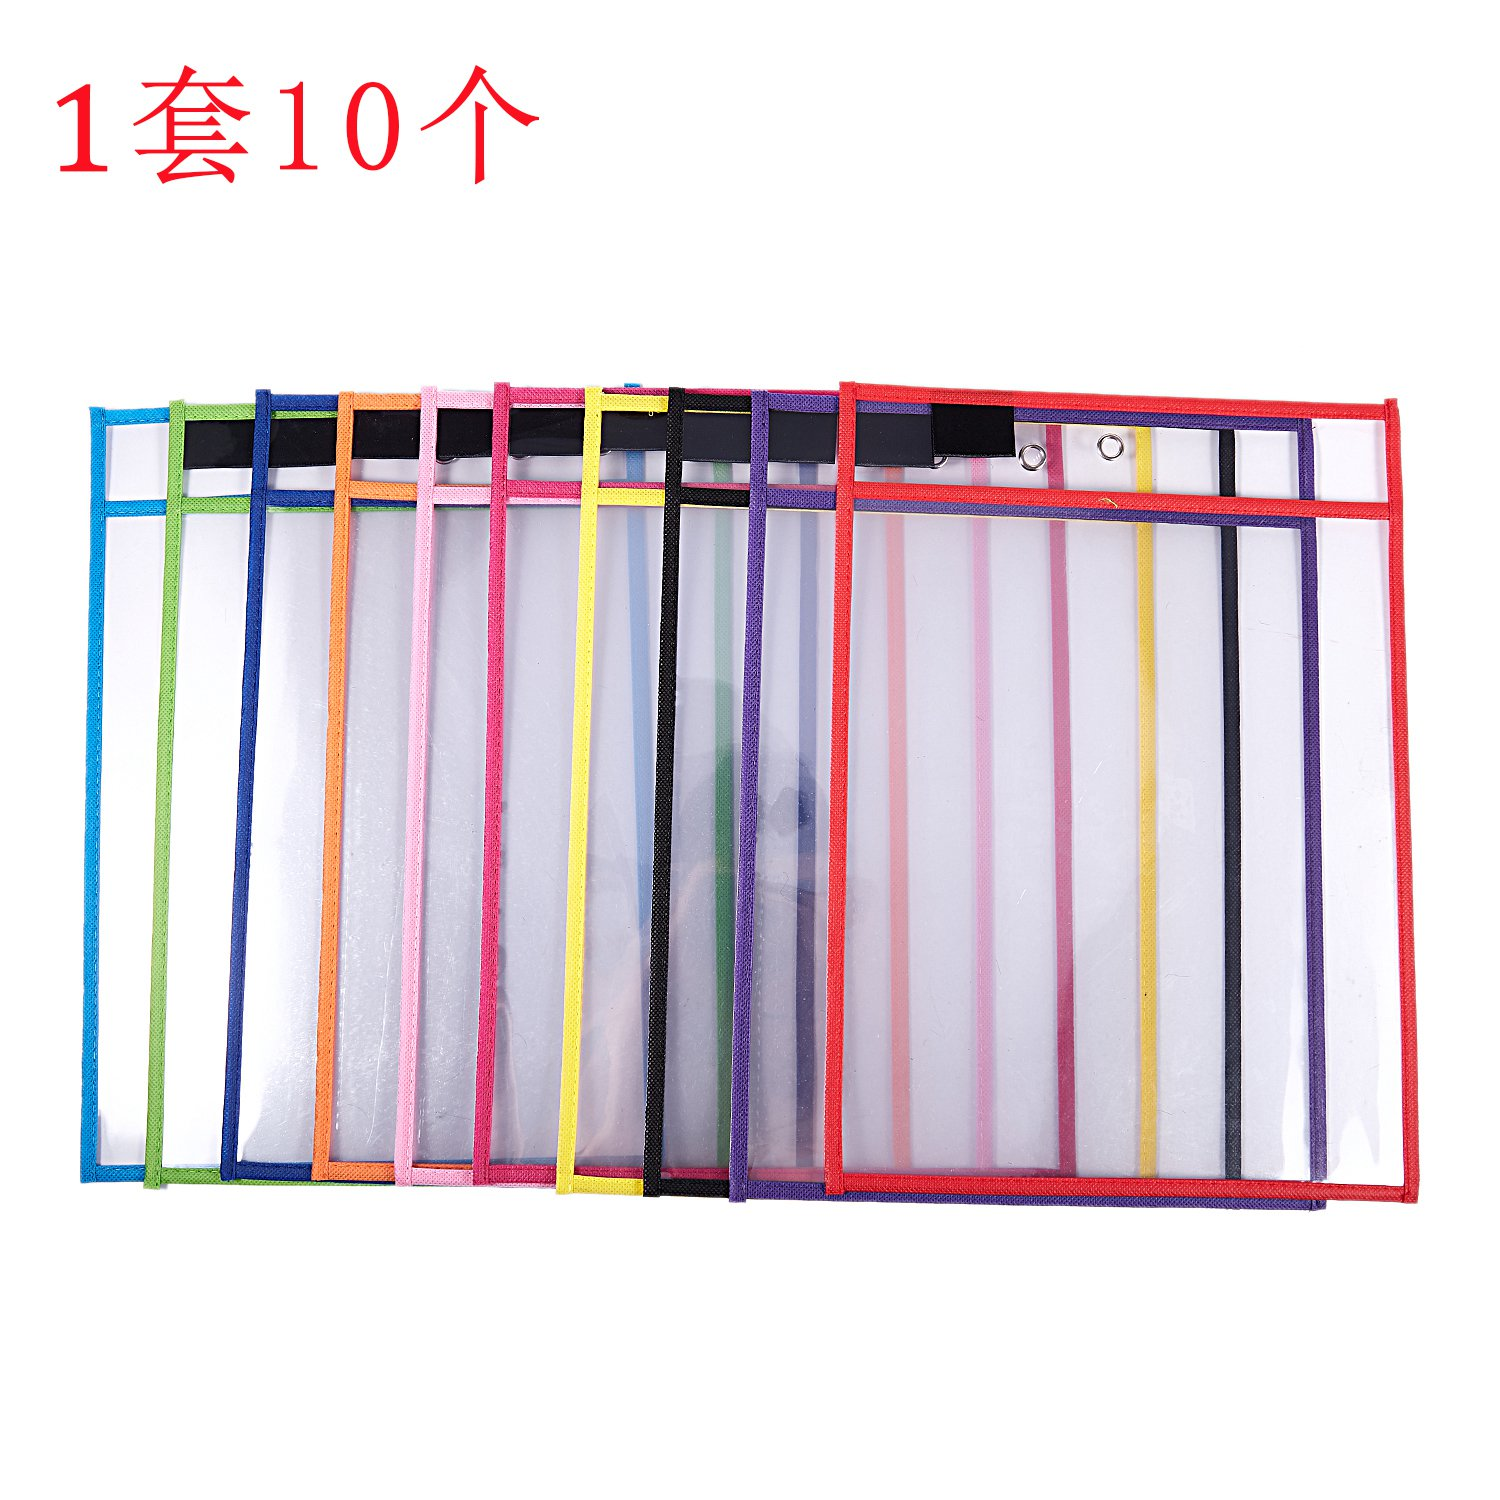 10Pcs Multicolored Dry Erase Pockets School Supplies For Teachers,Reusable Dry Erase Pockets,Dry Erase Sheets,Teaching Supplies